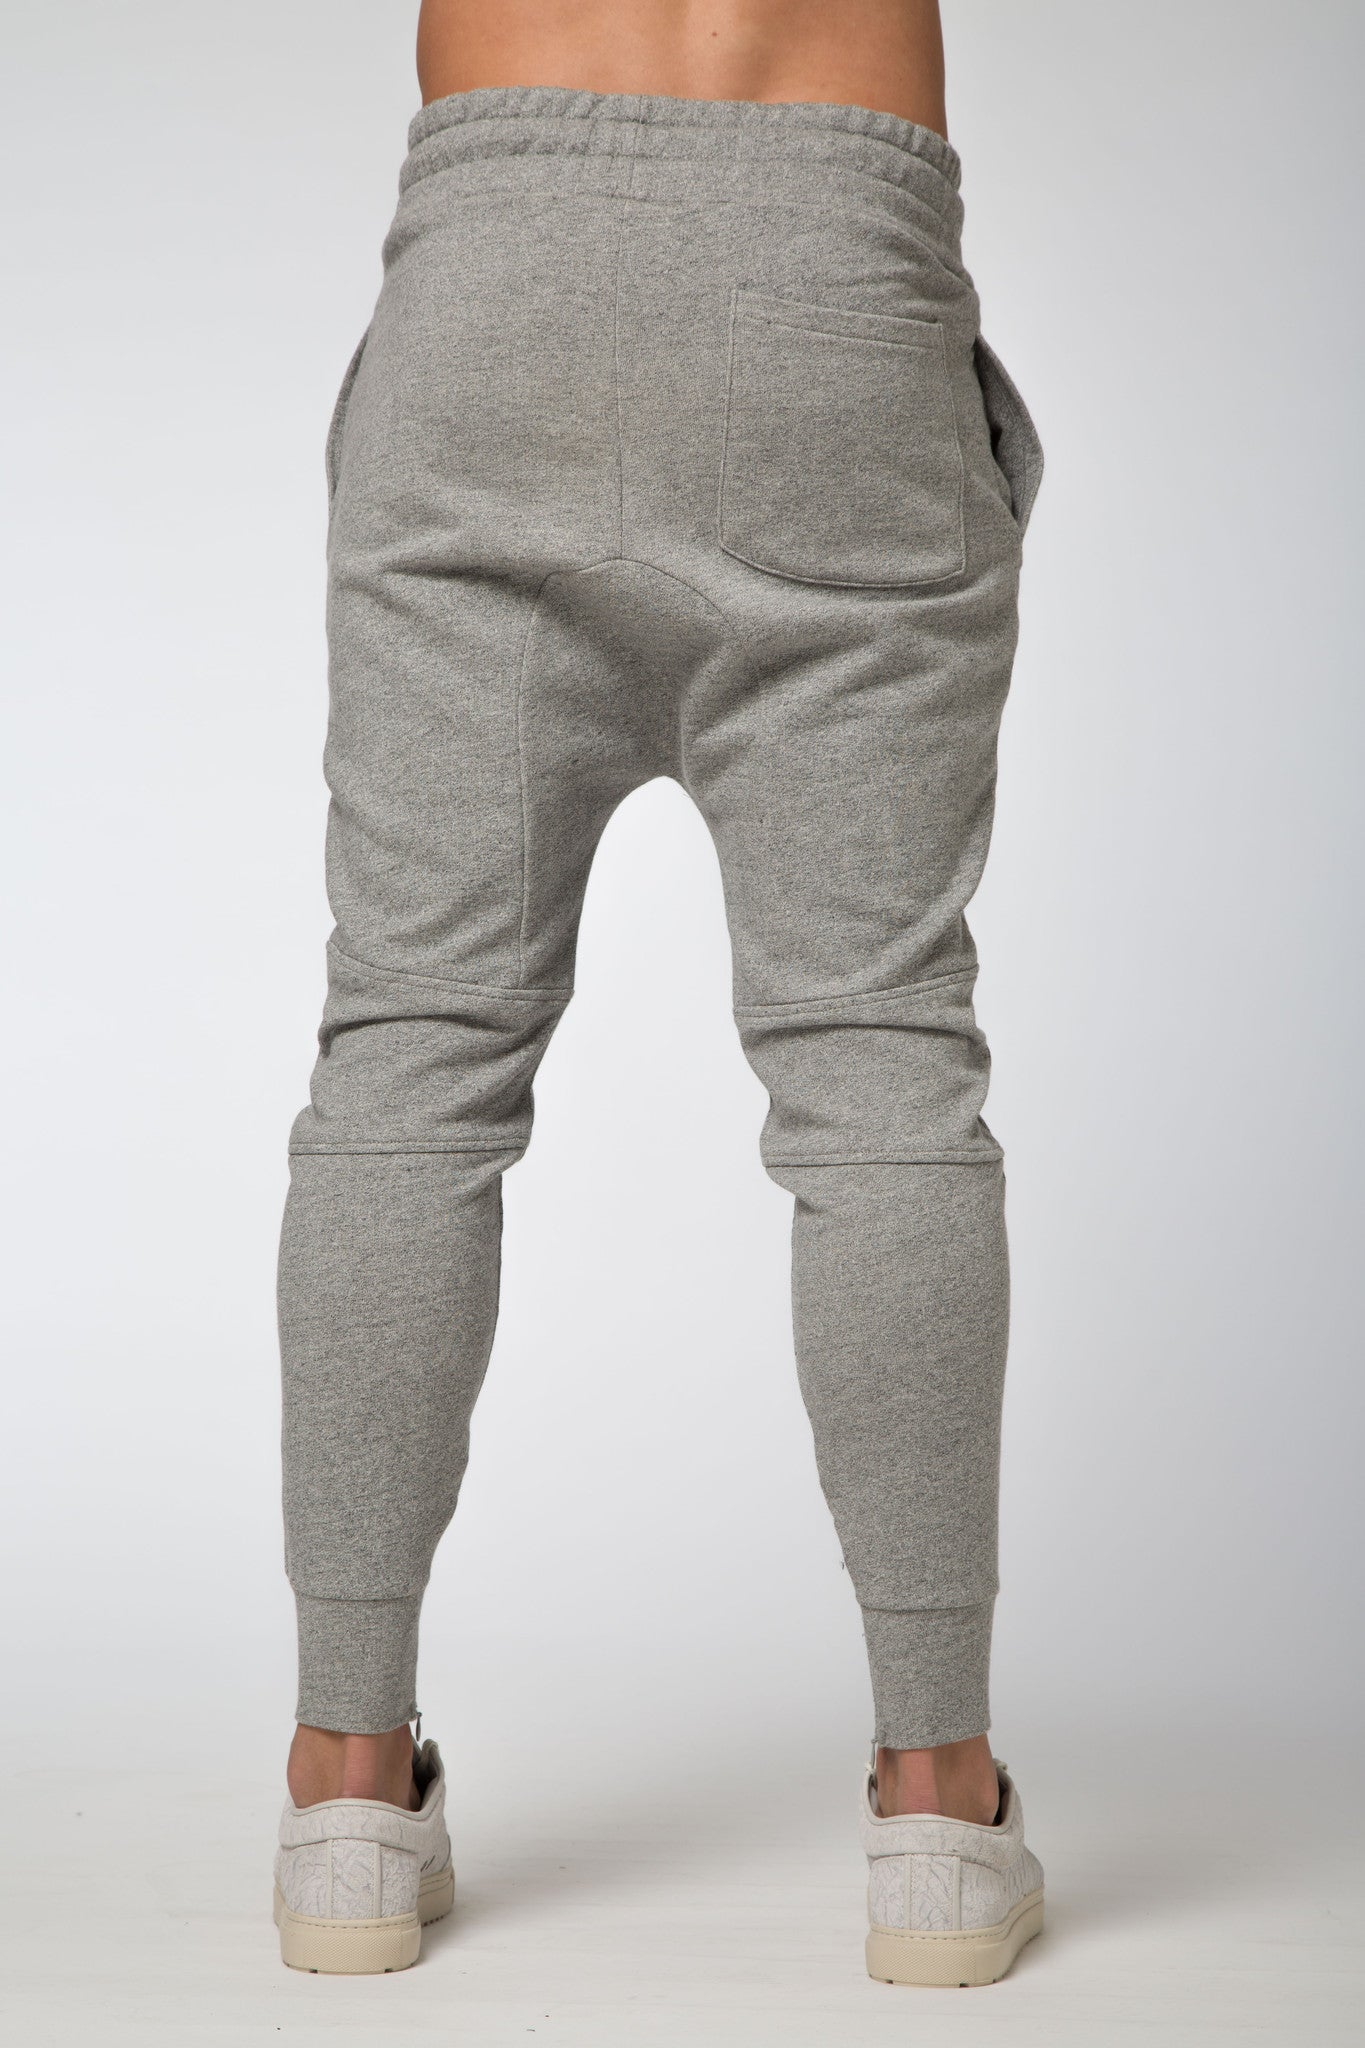 Avid & Co. [ Taylor ] Sweatpant Grey